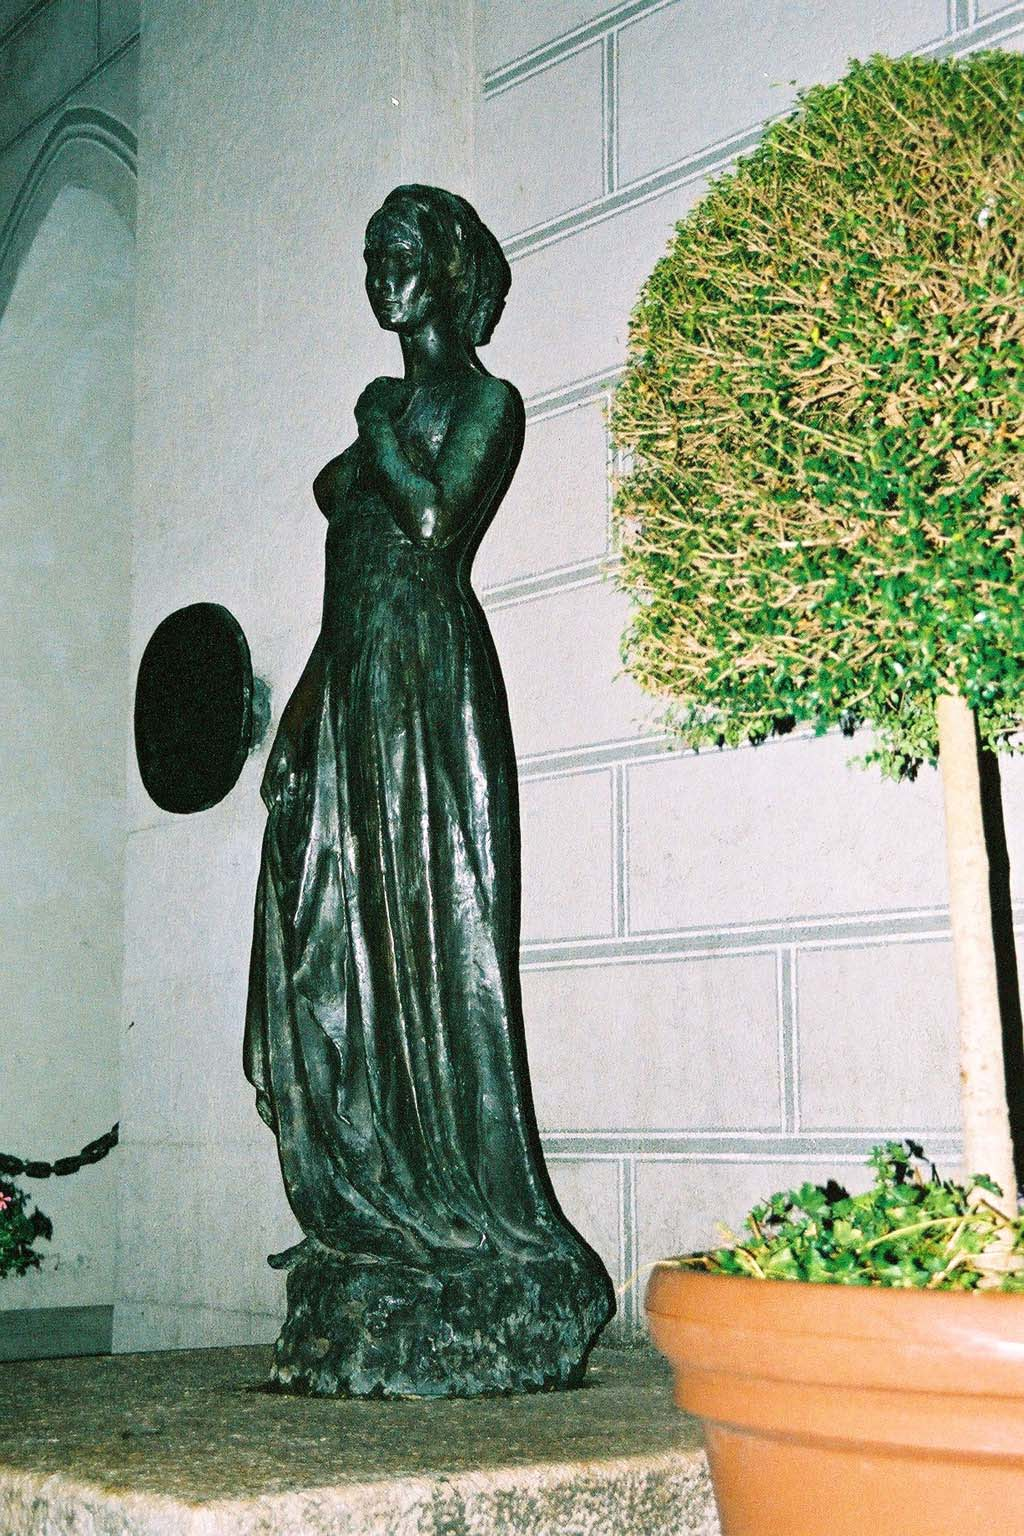 Bjs, St. Mary's Place, Munich. Statue of Juliet in front of the Old Townhall, Oktober 2004